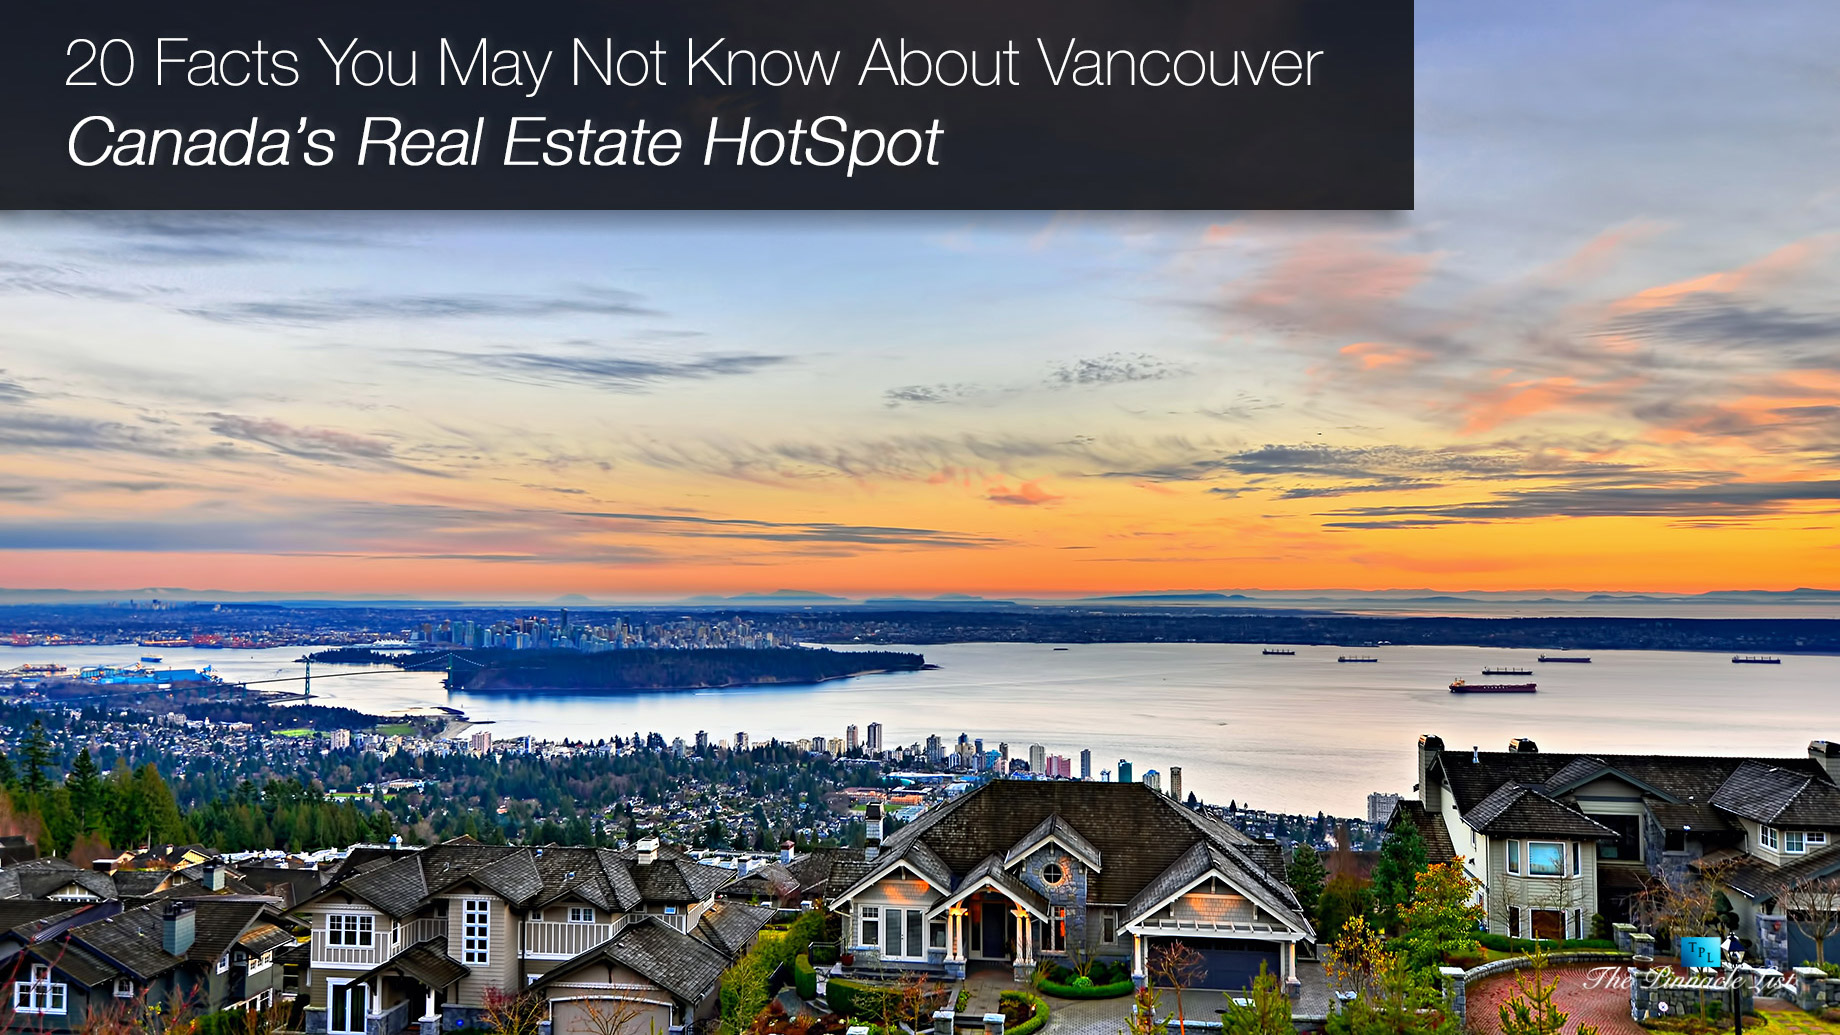 20 Facts You May Not Know About Vancouver - Canada's Real Estate Hotspot